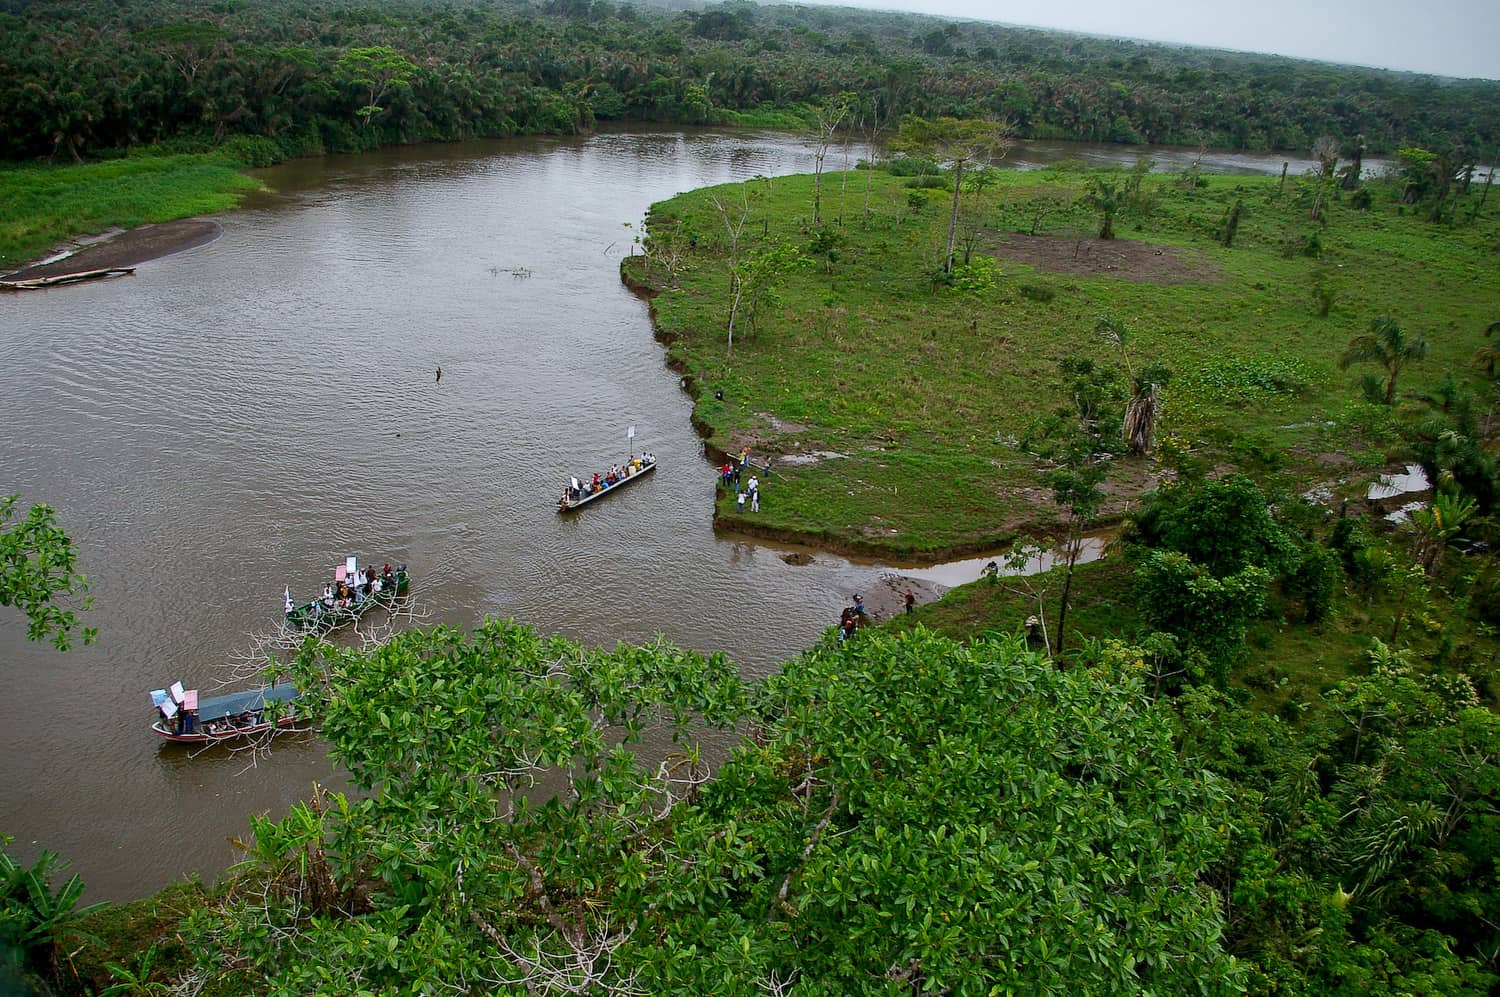 The San Juan River near the disputed Isla Calero wetland.